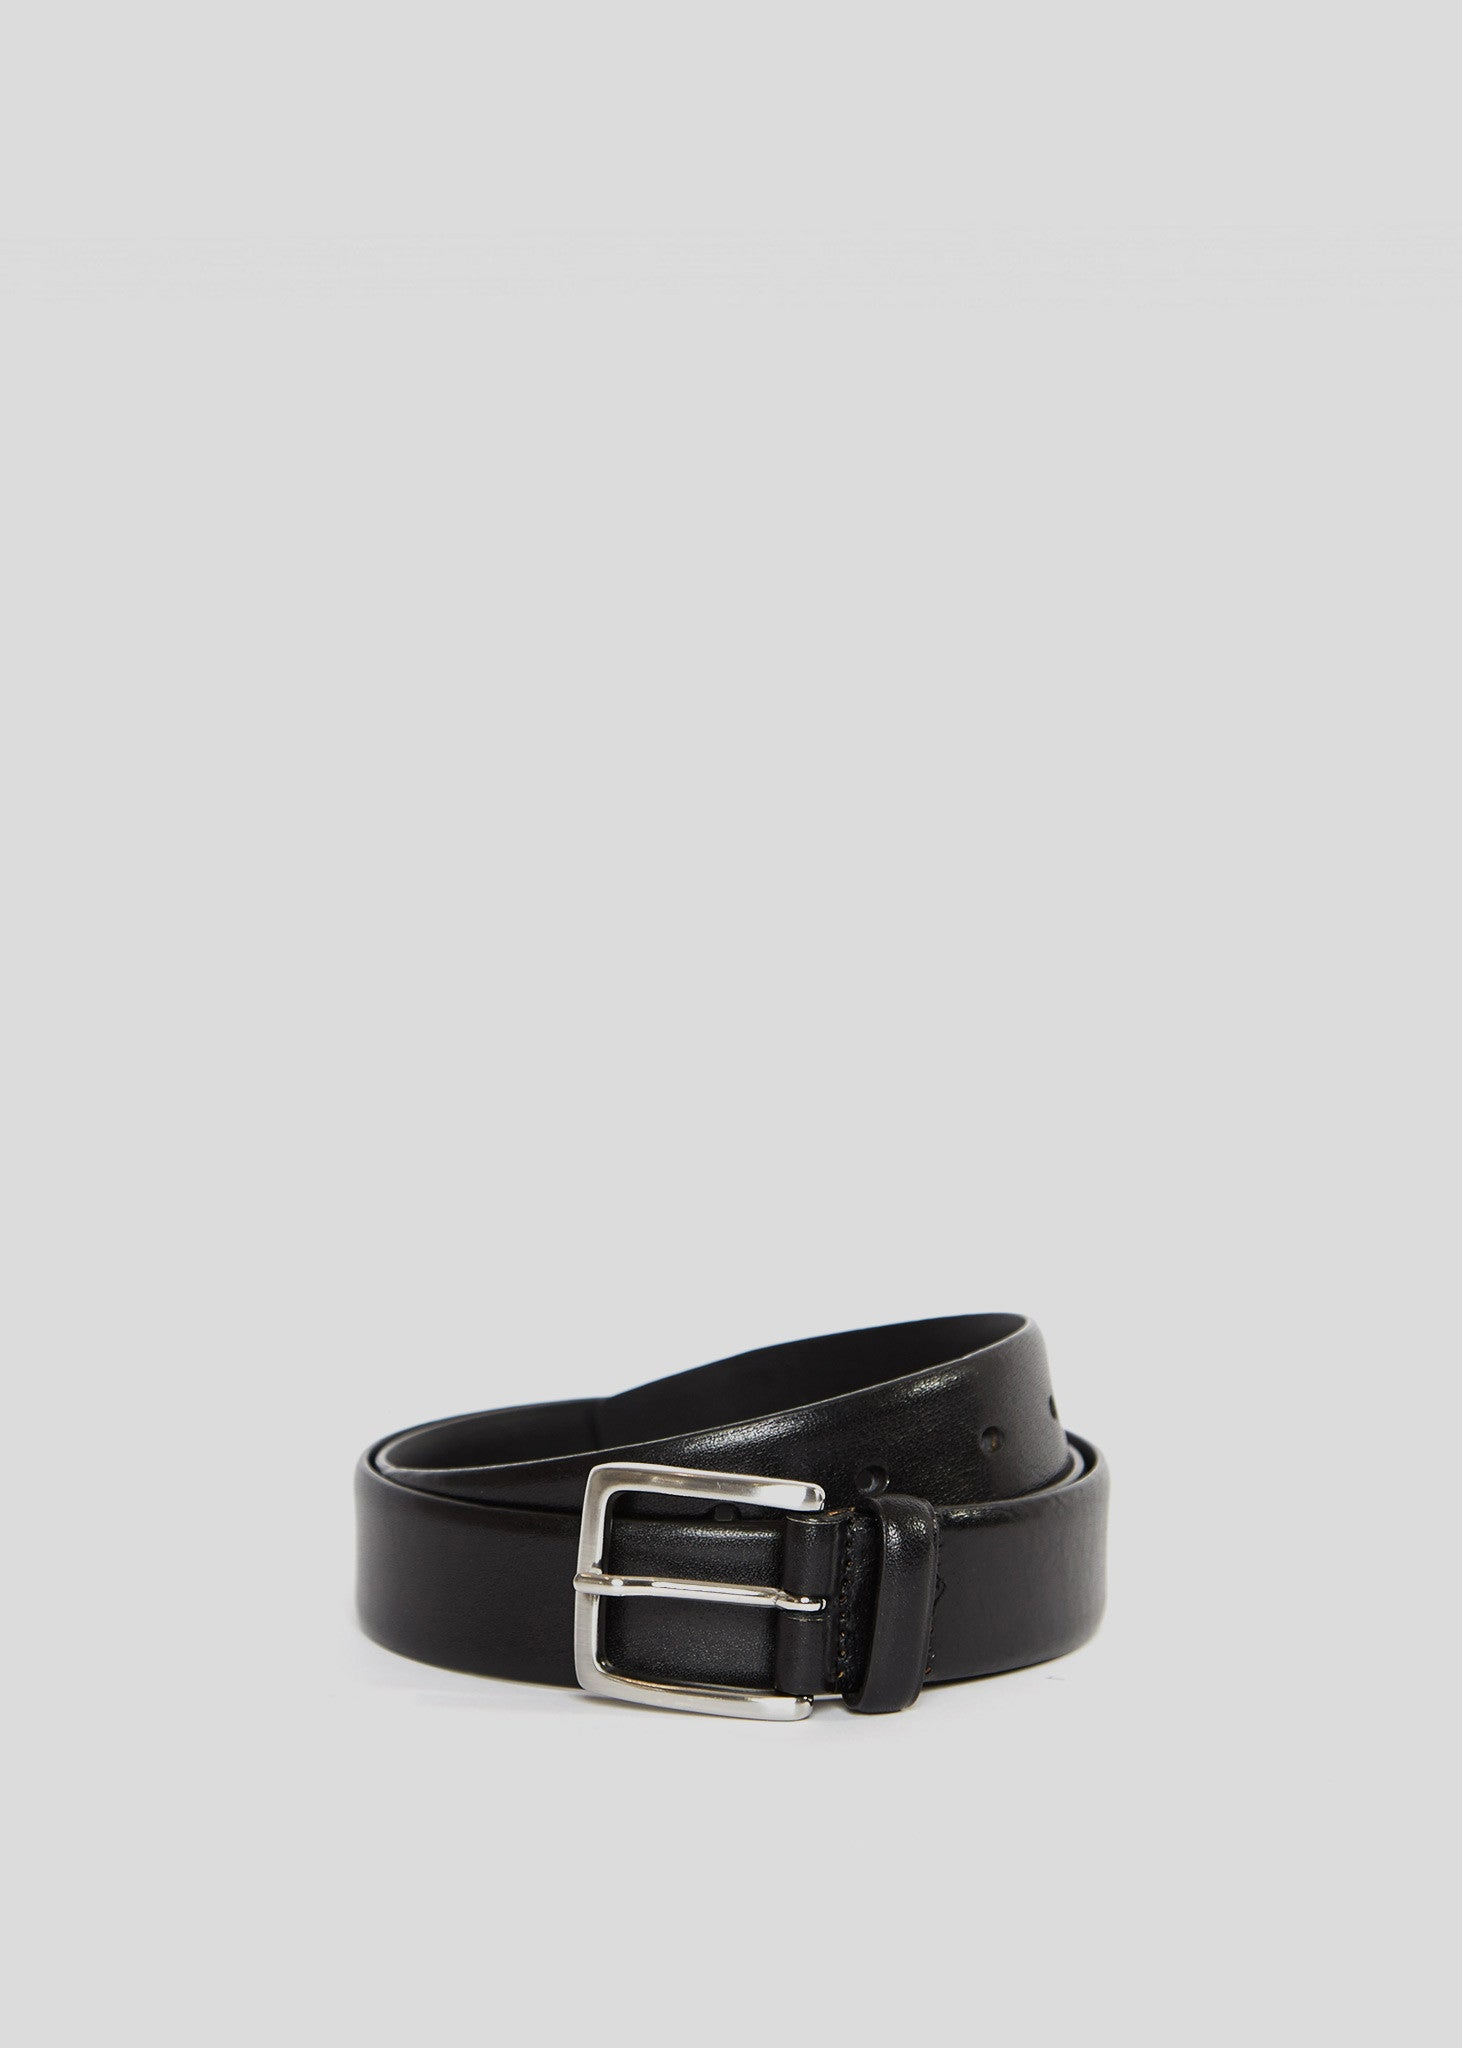 Bel Belt Ana 3cm Black Royal Republiq Mens Belts- someplace